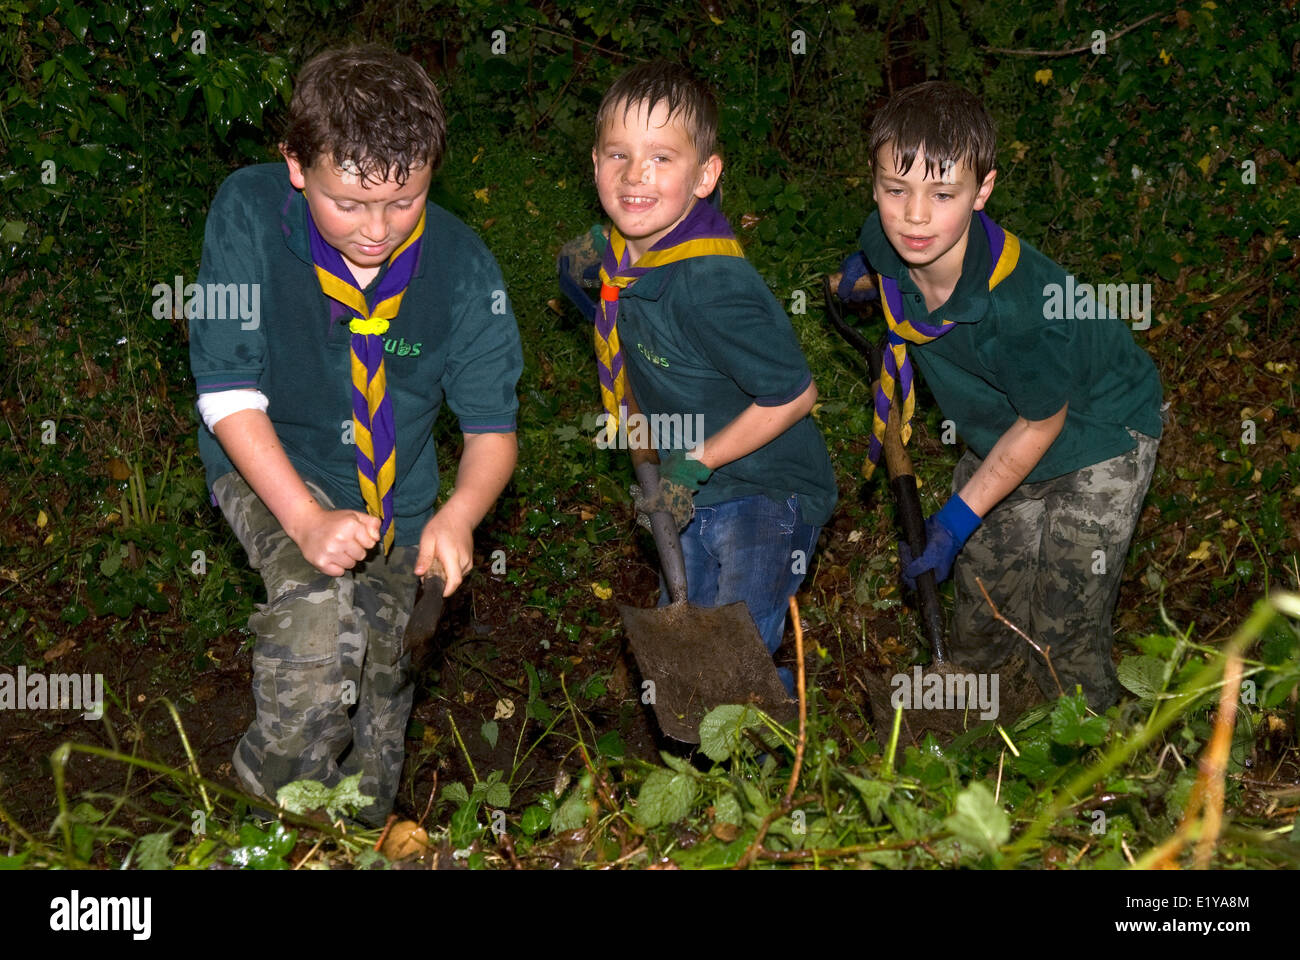 Three cubs cleaning foliage to make way for new hut, Liss, Hampshire, UK. - Stock Image